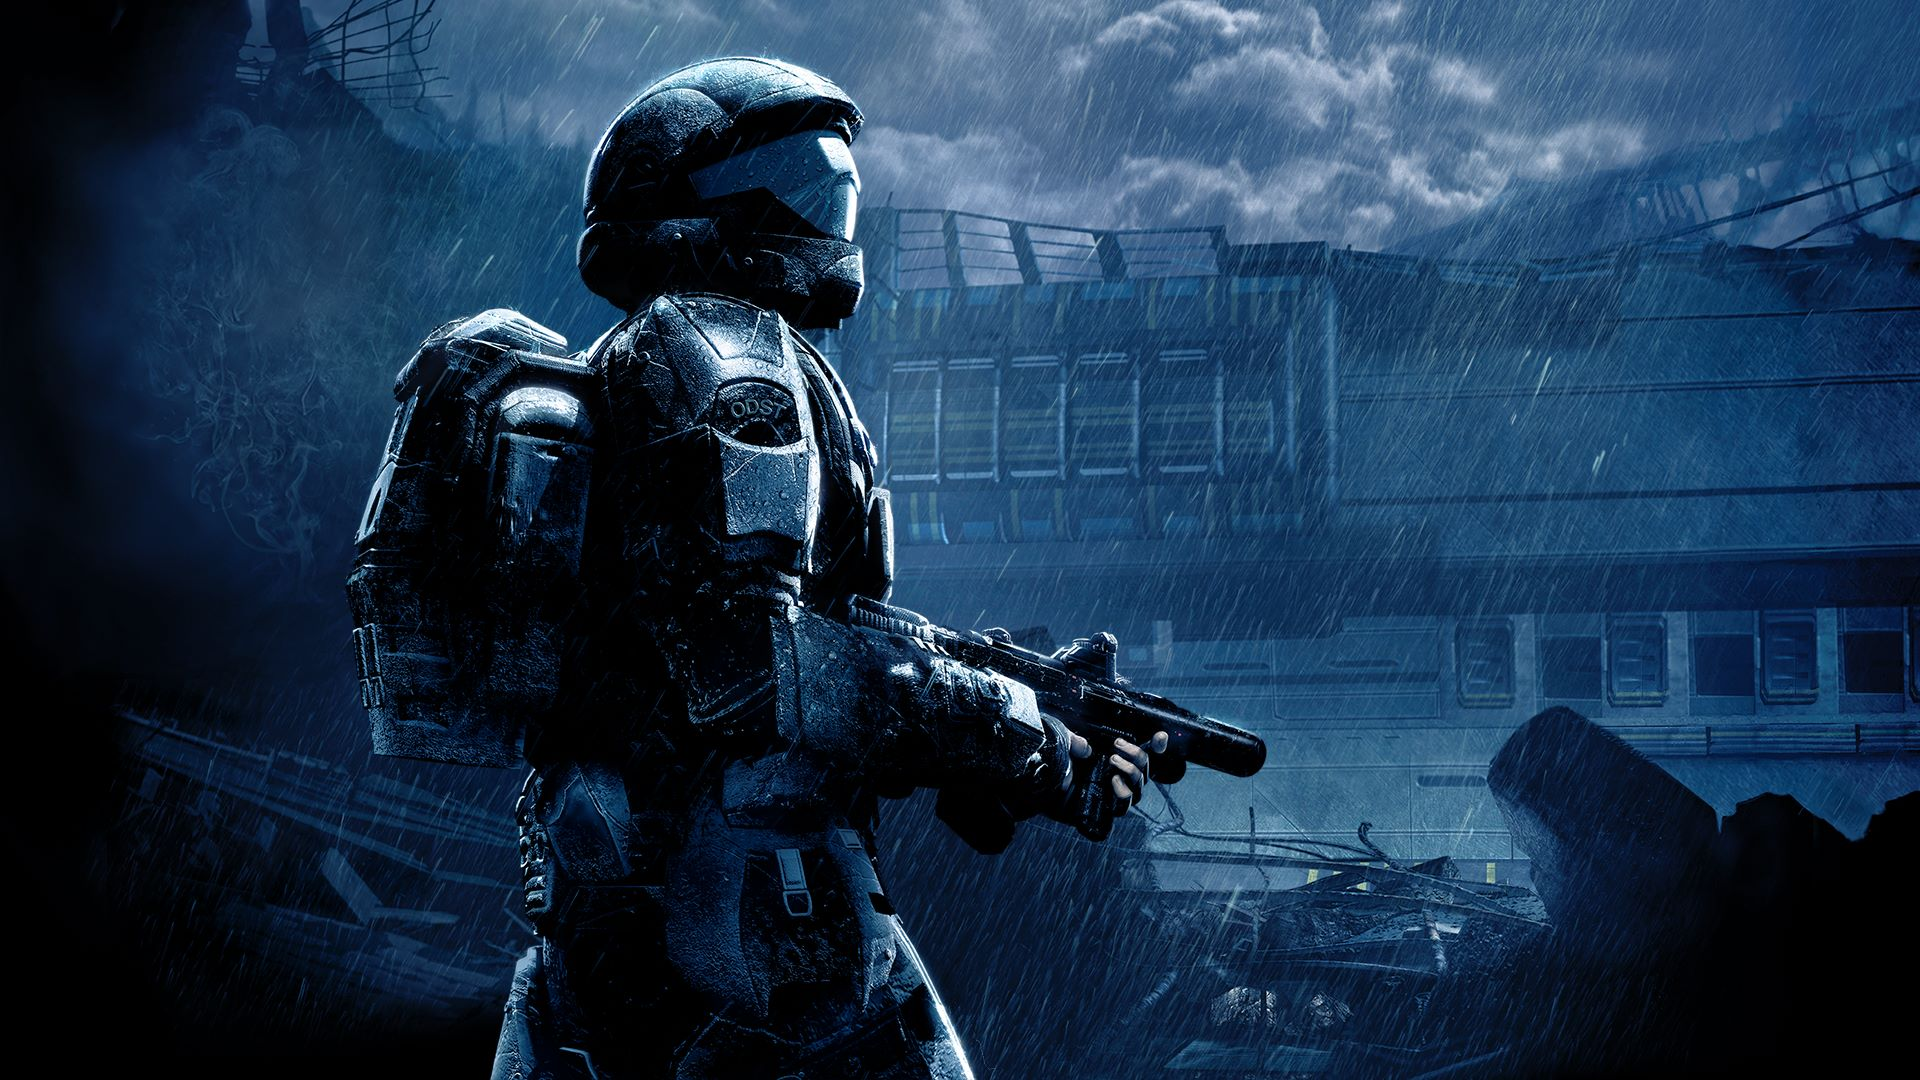 Buy halo 3 odst microsoft store - Halo odst images ...